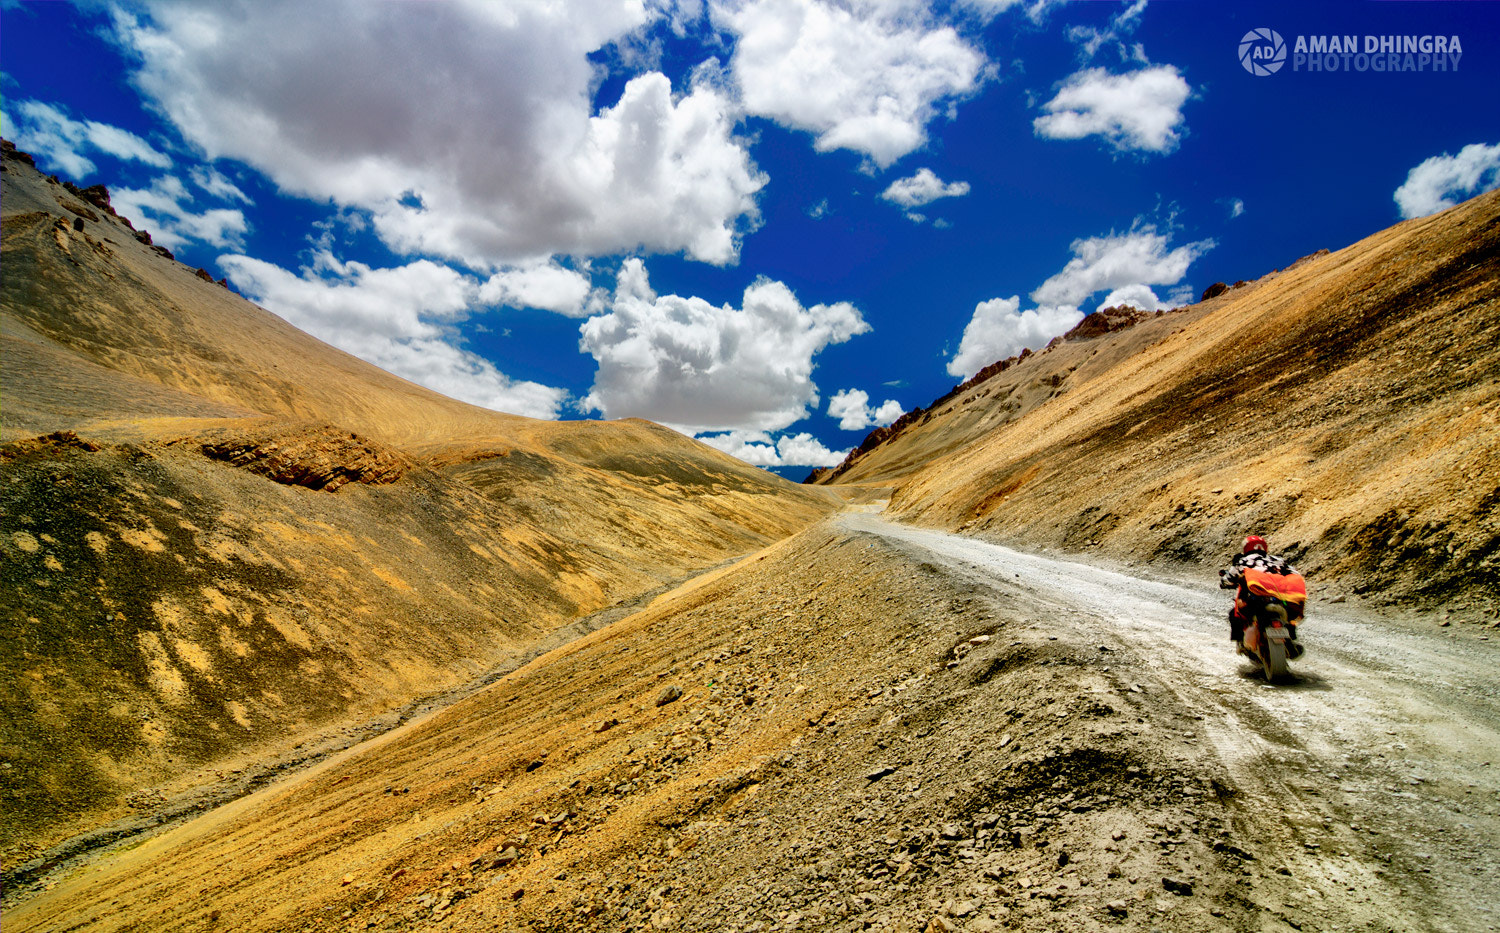 Photograph Journey to paradise by Aman Dhingra on 500px